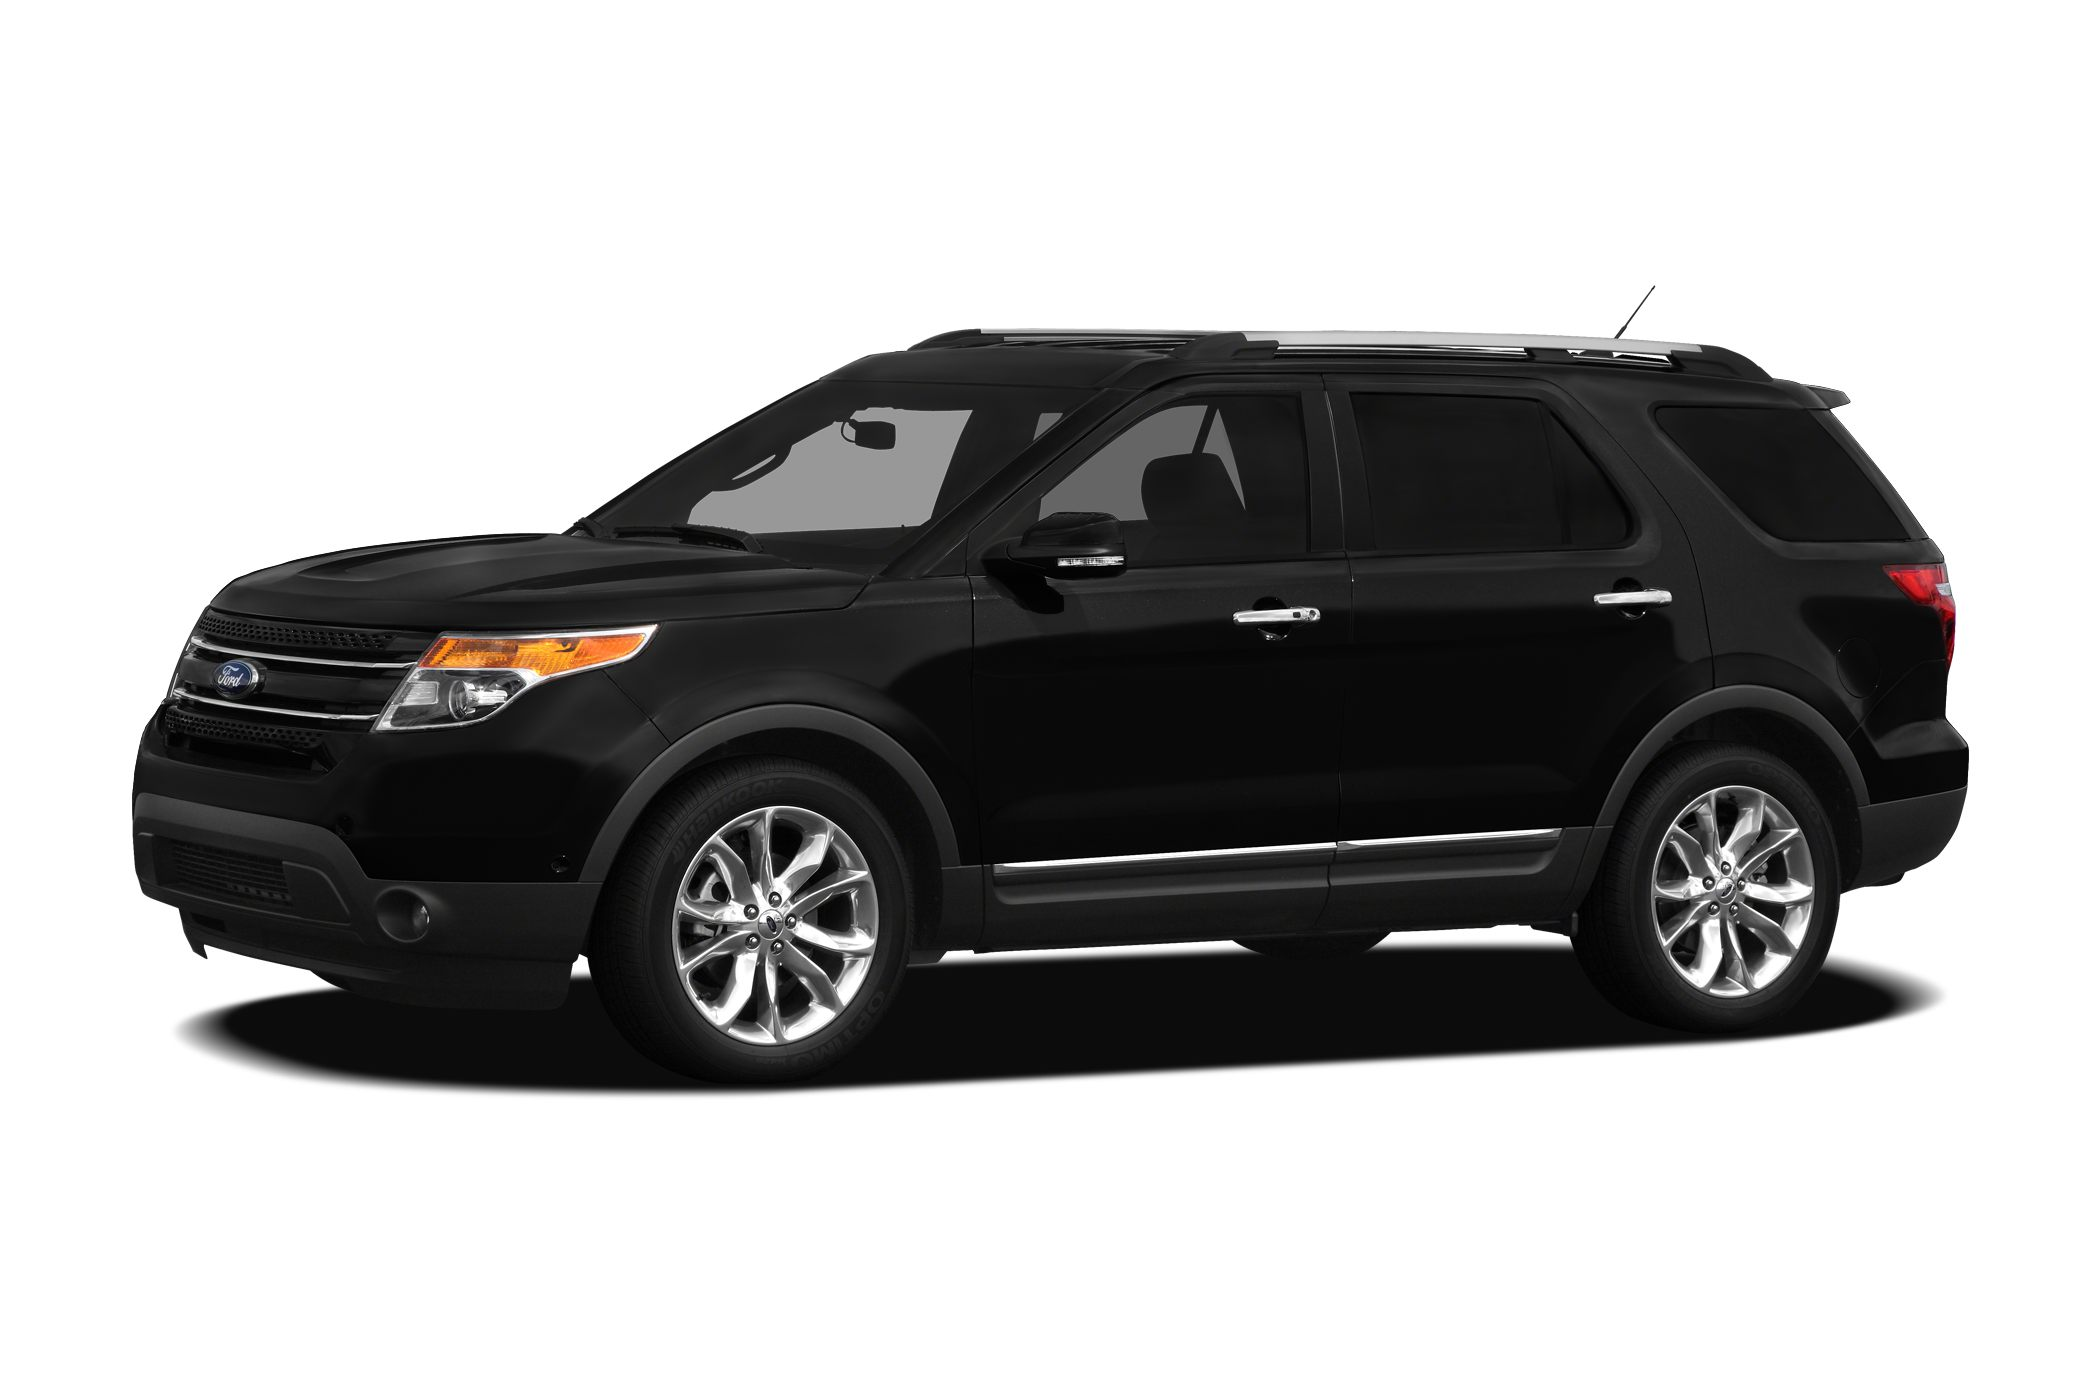 2011 Ford Explorer Limited SUV for sale in Edenton for $25,899 with 55,834 miles.